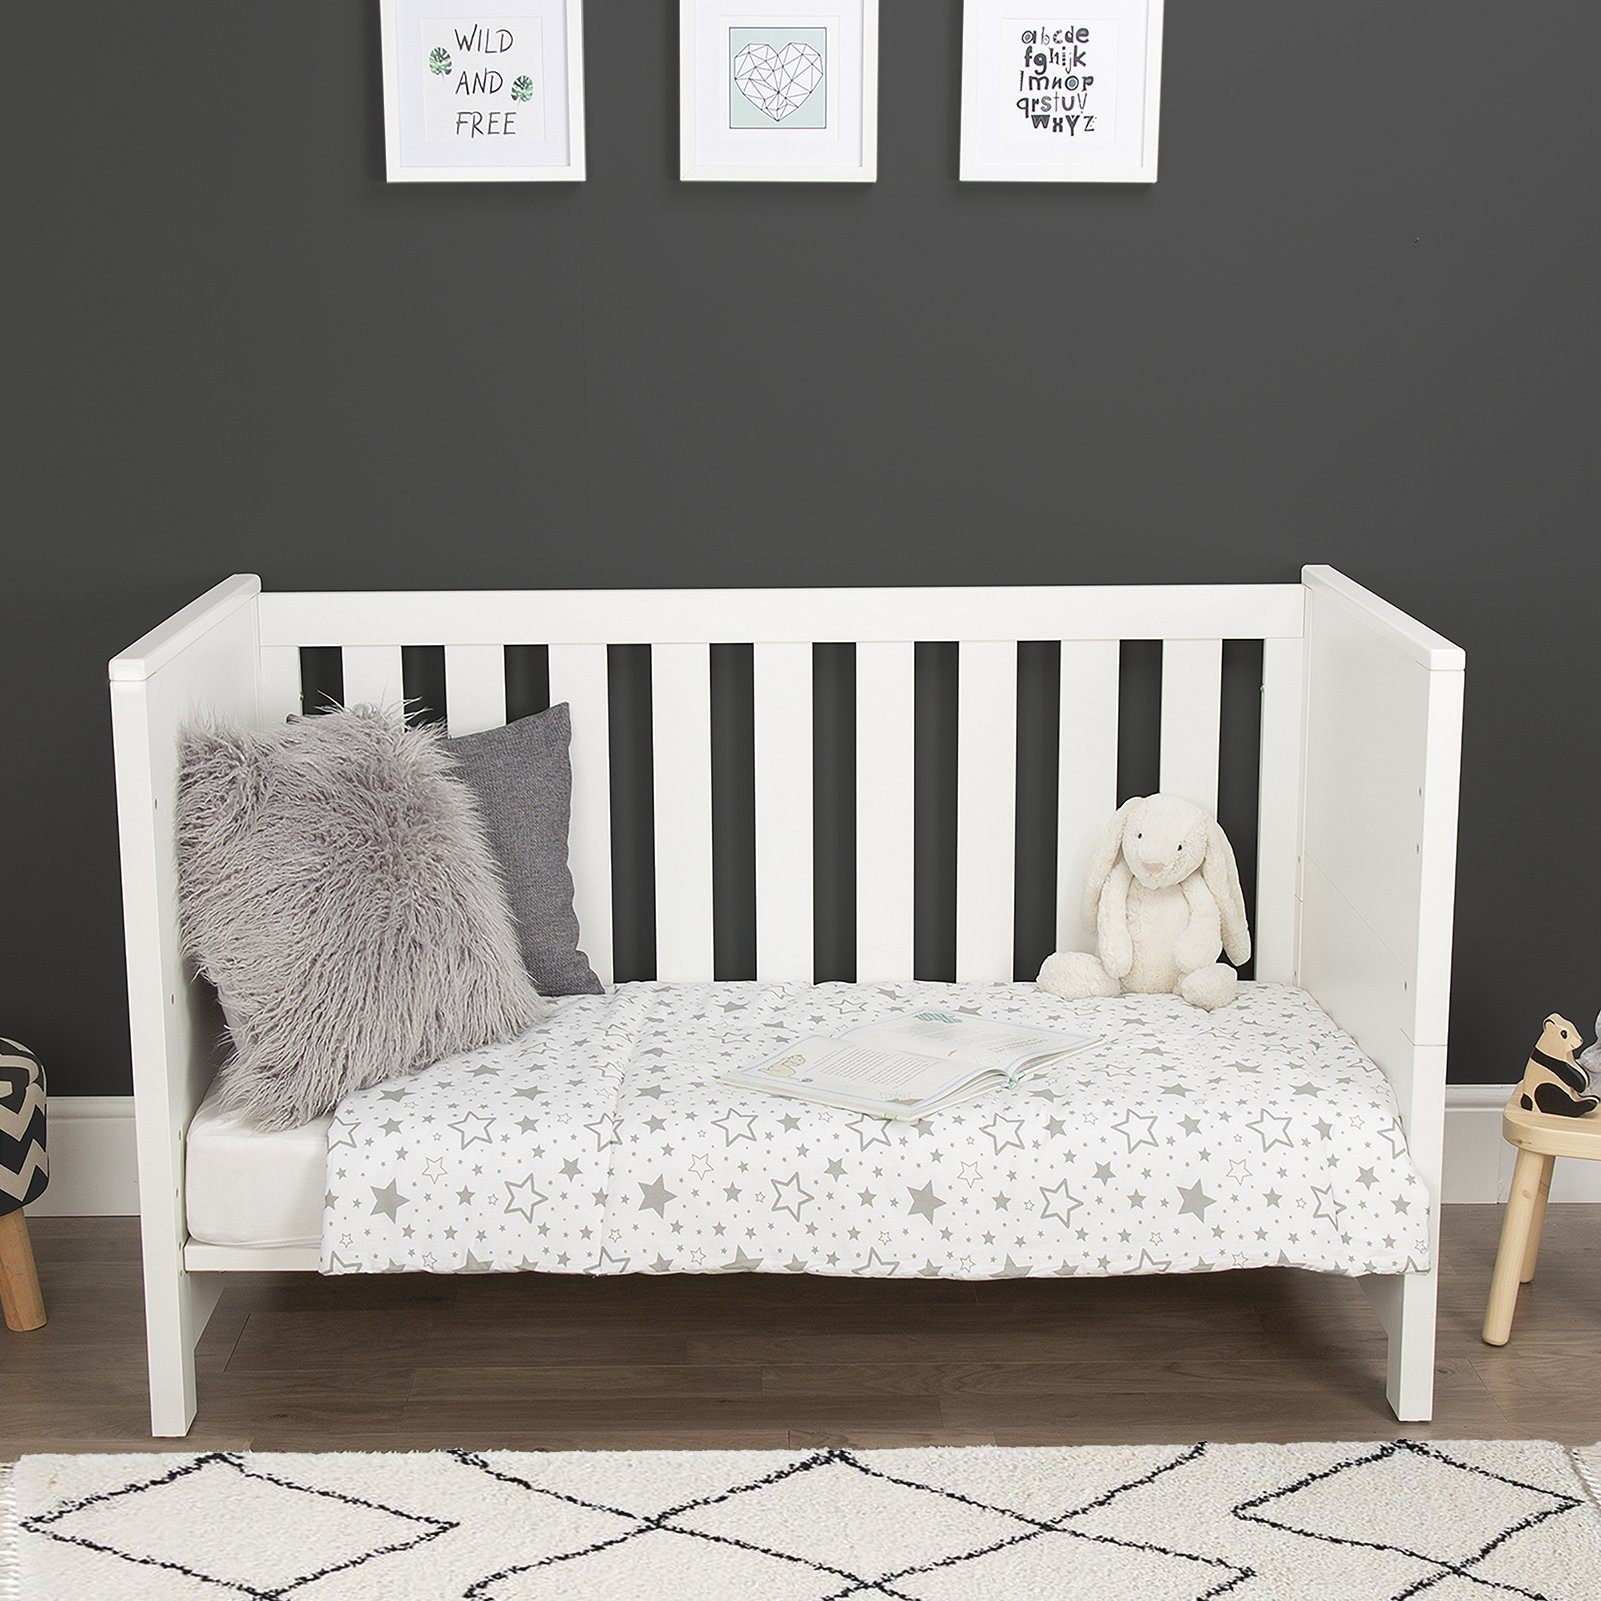 Aylesbury 2 Piece Nursery Room Set White + Signature Hypo-Allergenic Bamboo Pocket Sprung Cot Bed Mattress Furniture CuddleCo